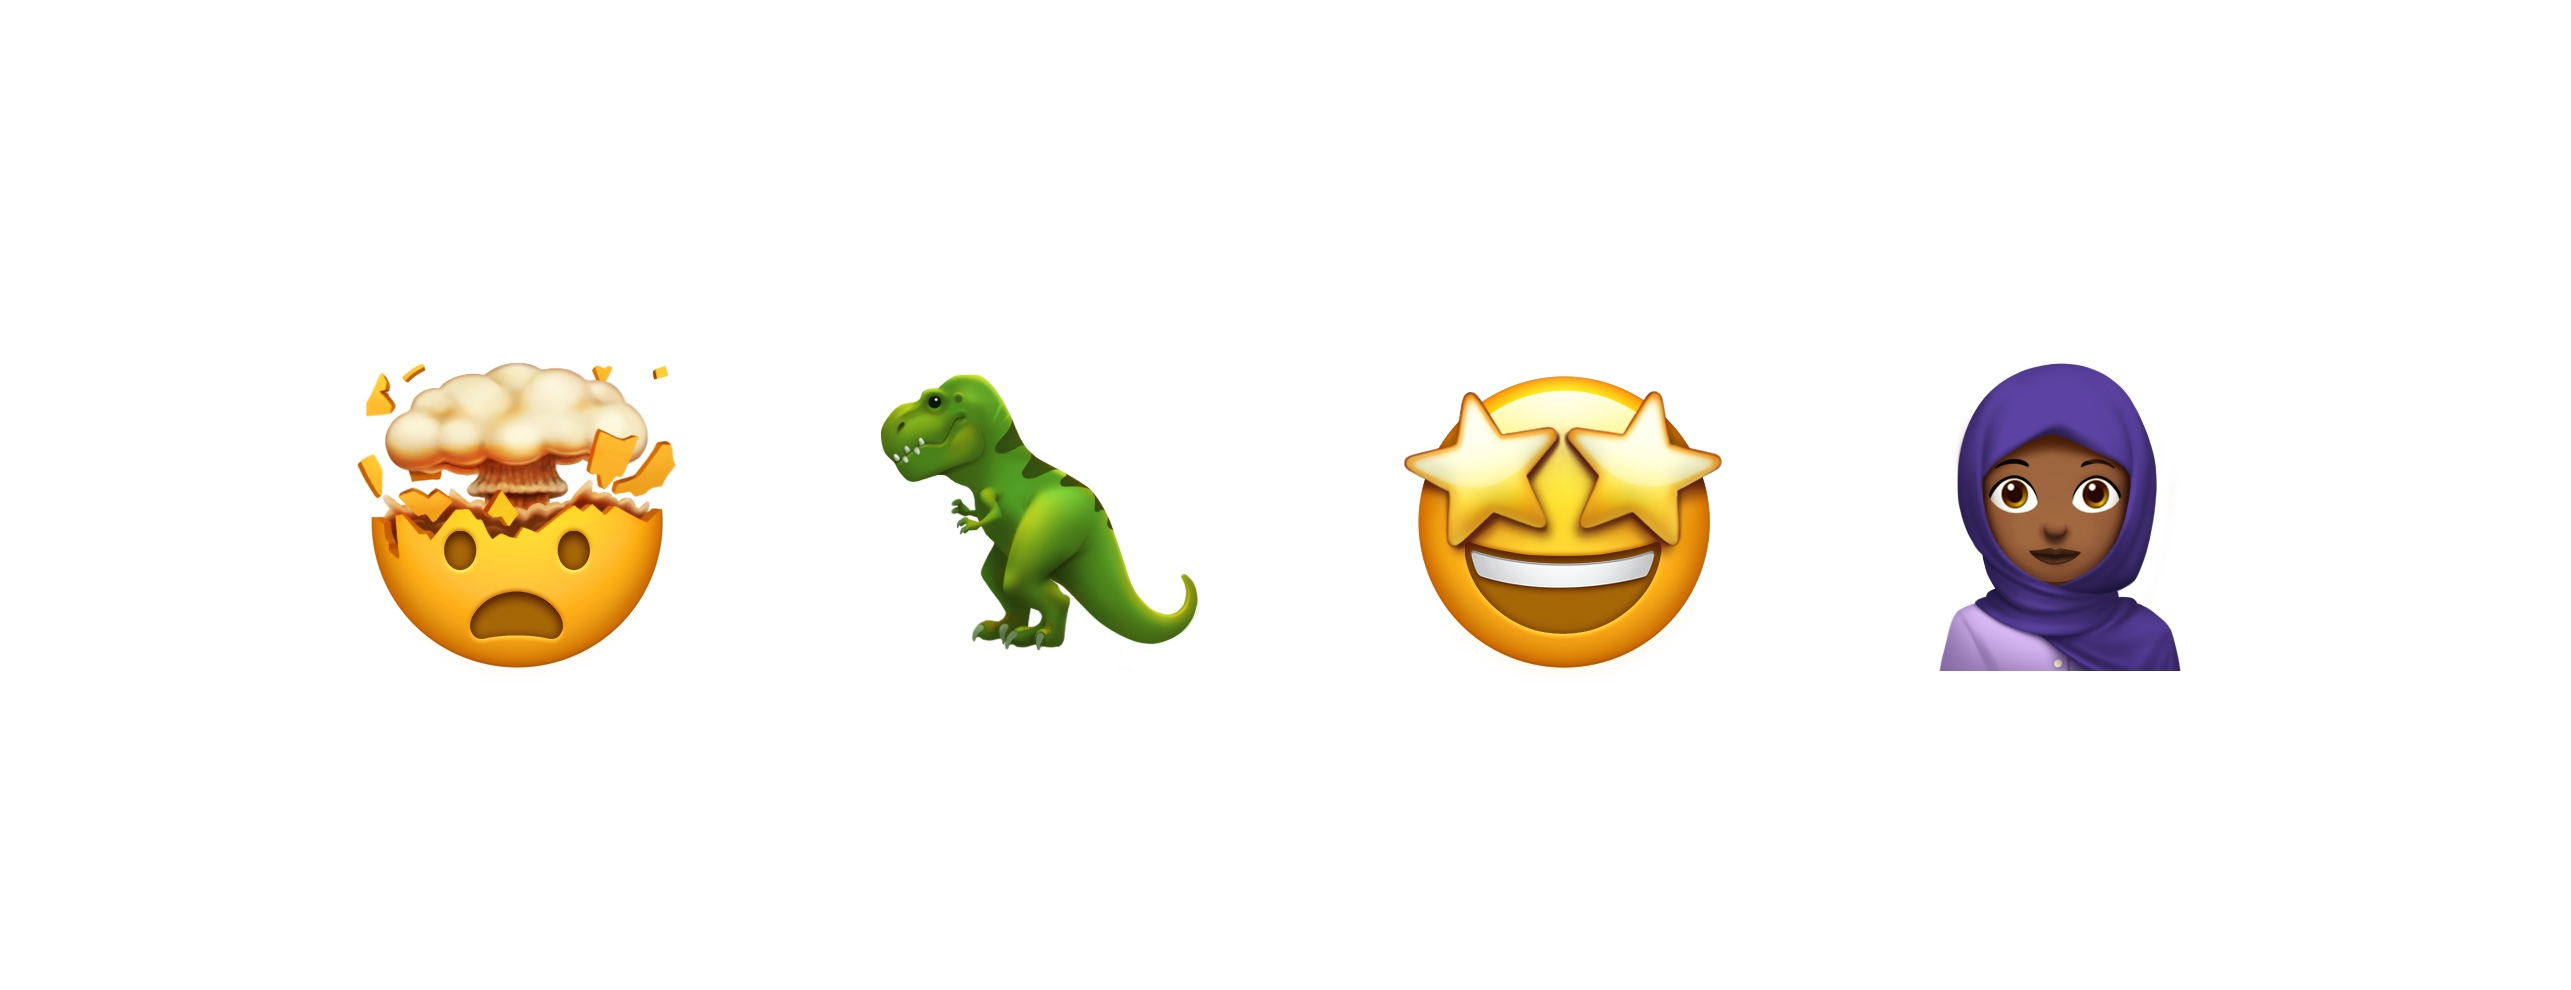 pictures made with emojis